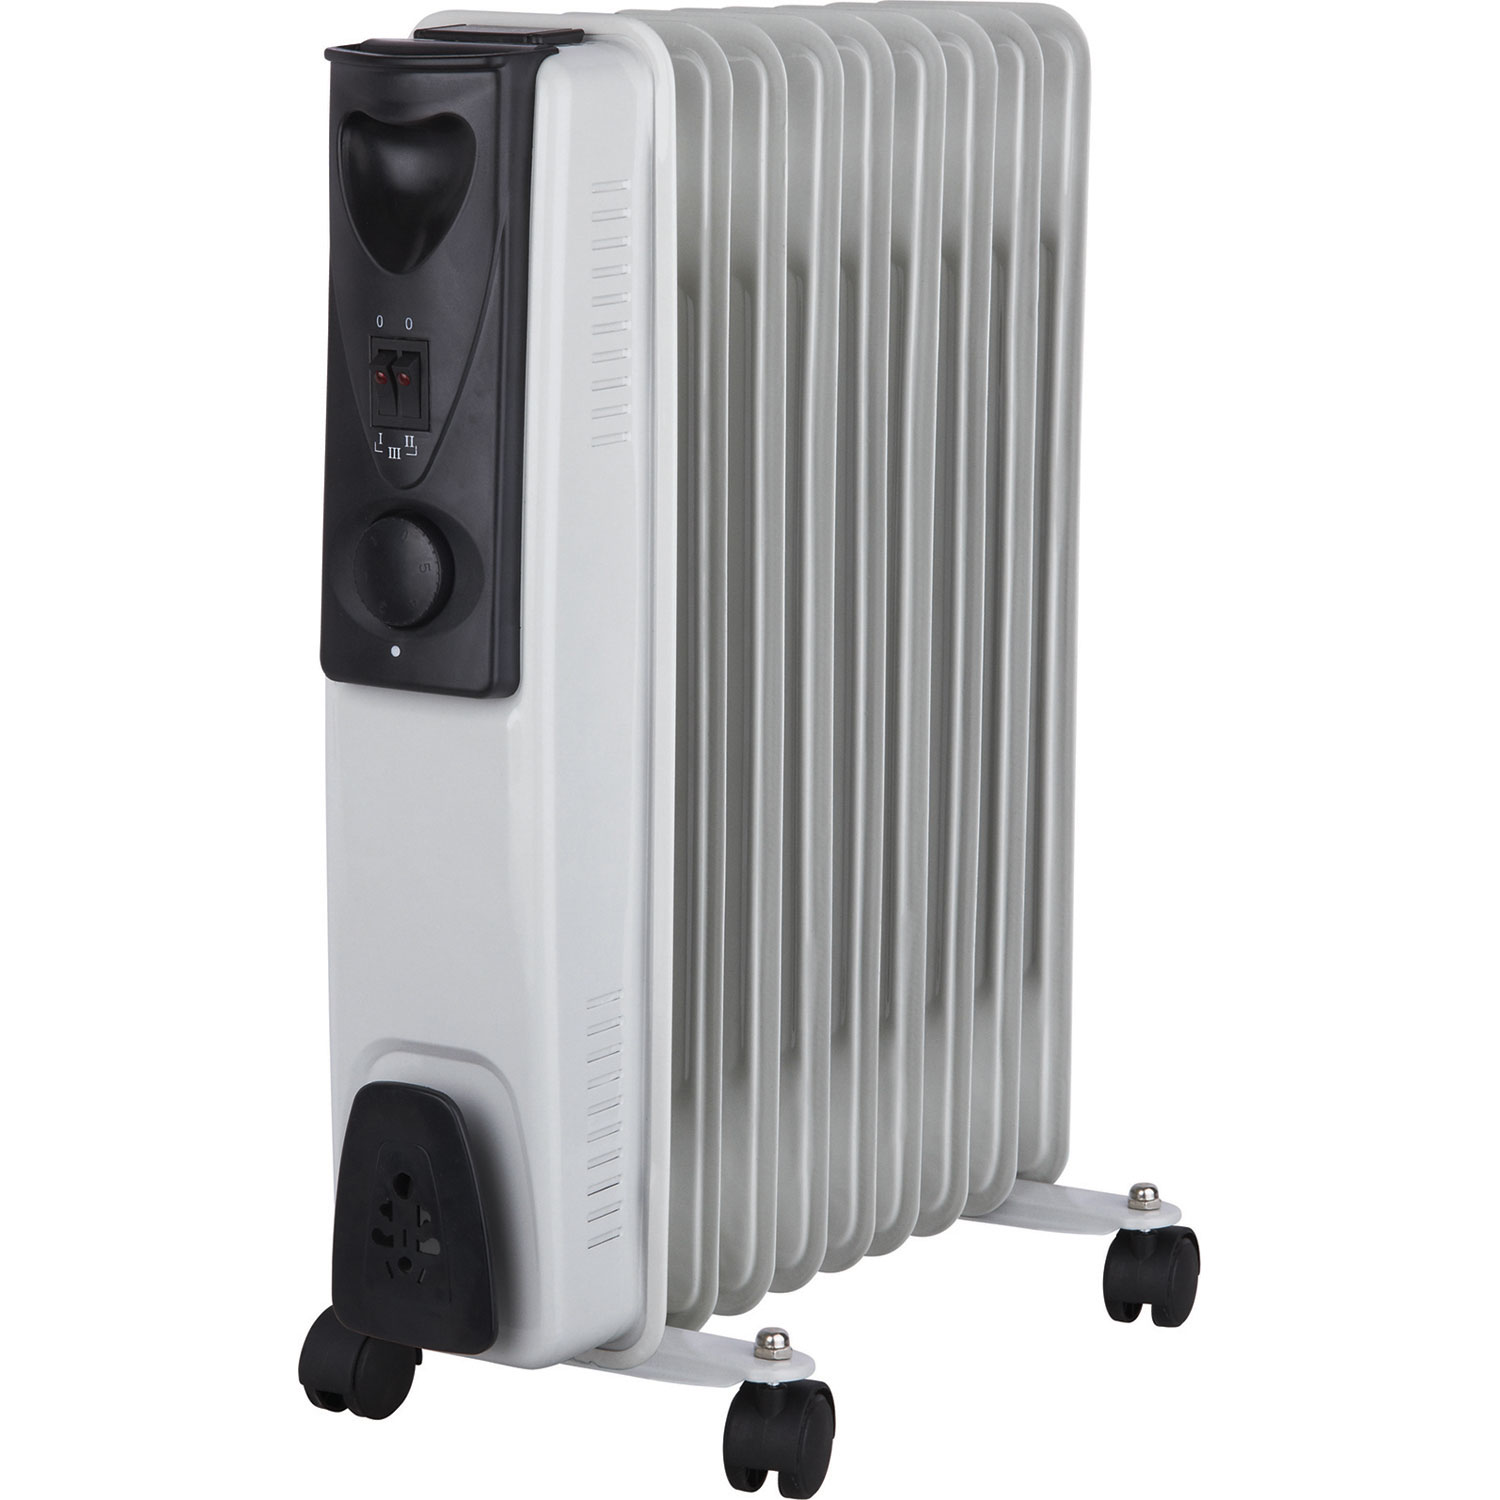 Kingavon 2kw 9 Fin Oil Filled Radiator